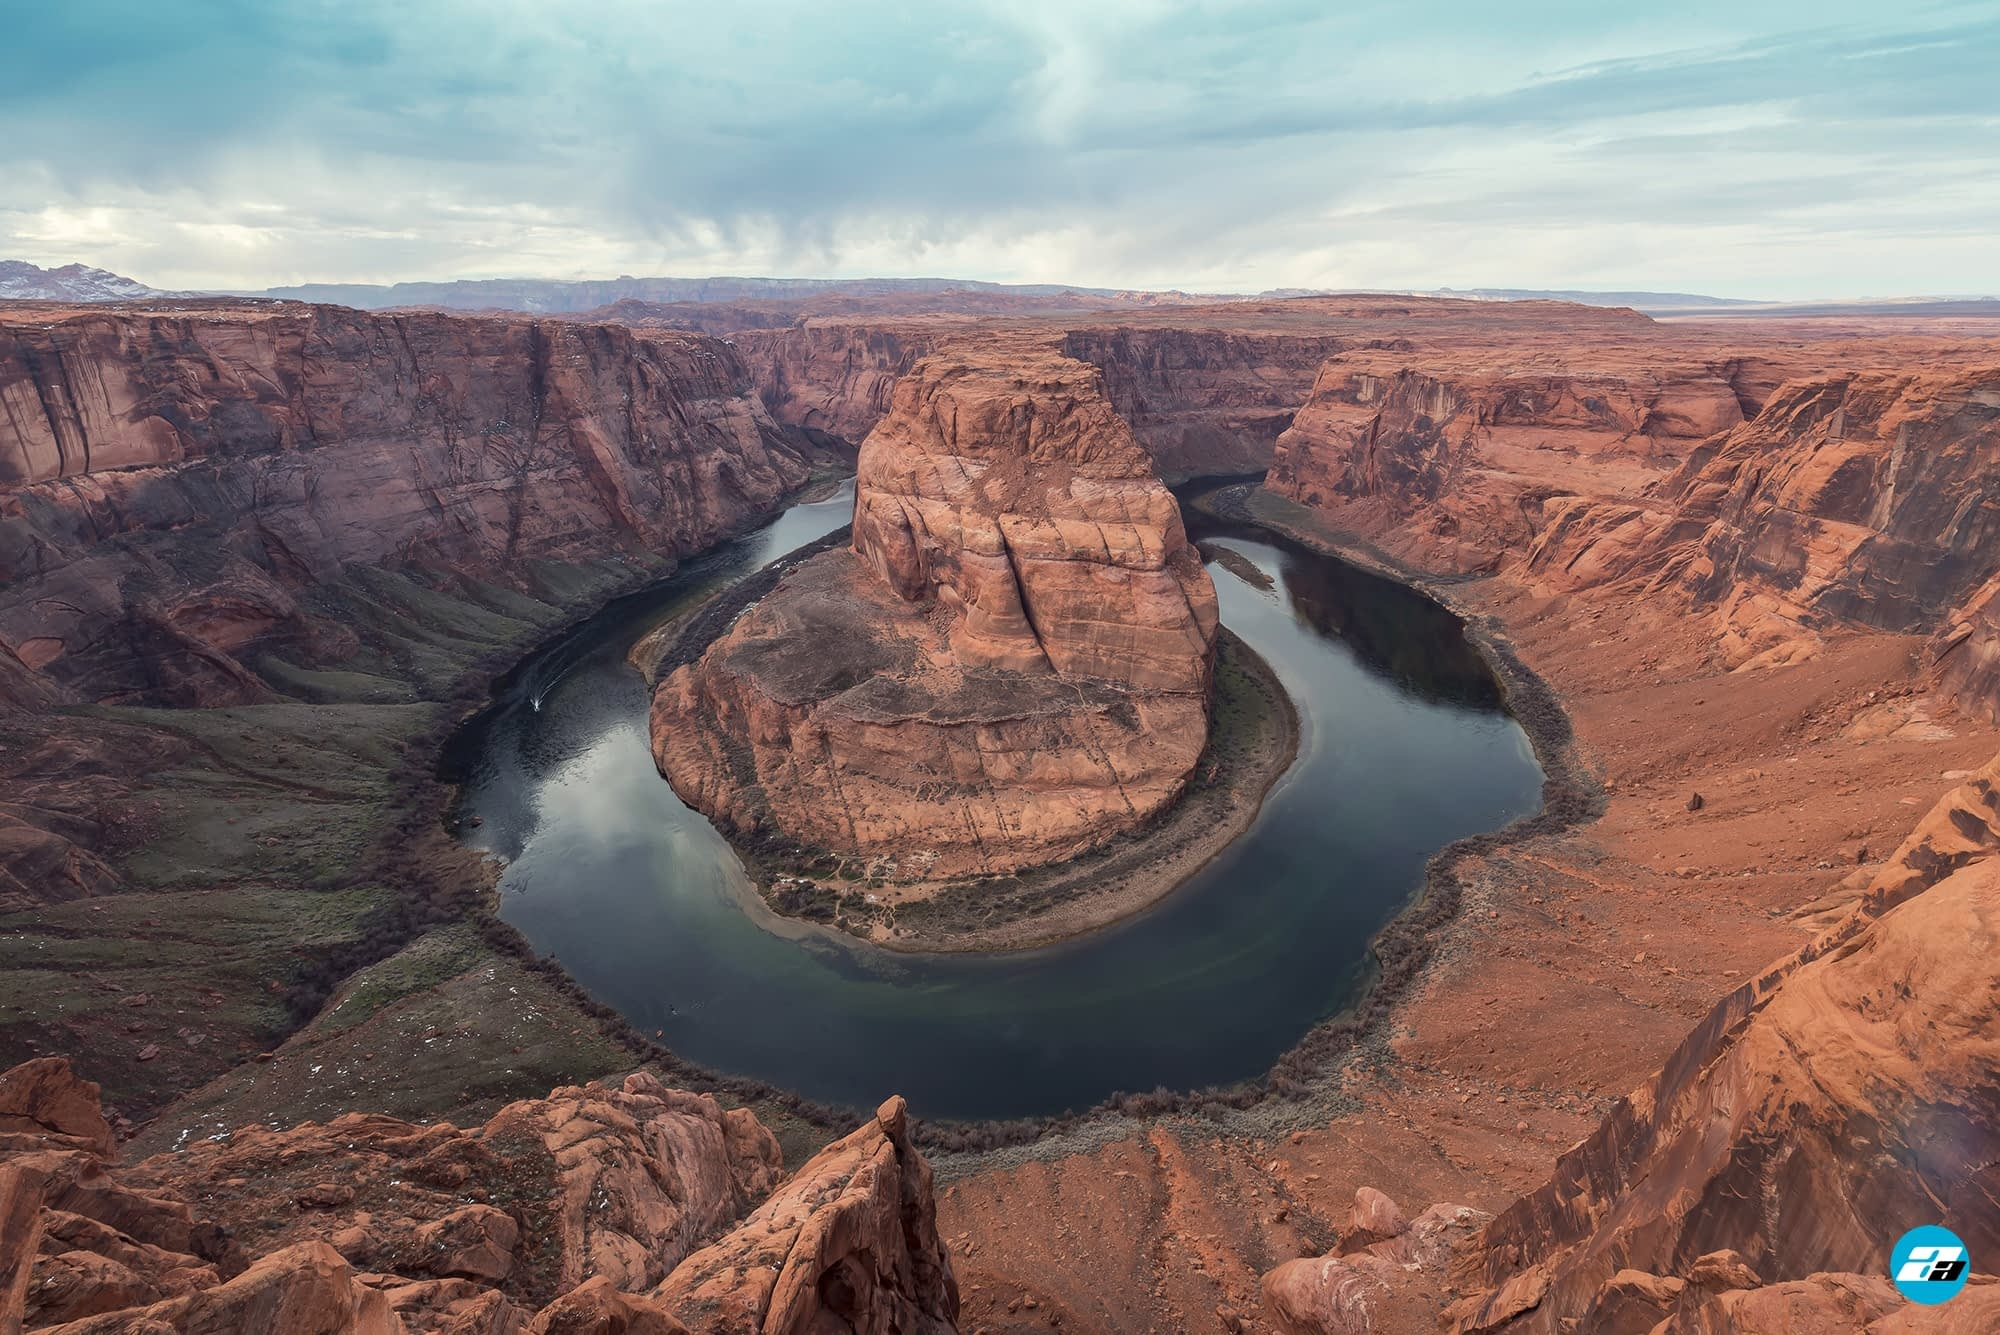 Horseshoe Bend, Arizona, USA. Family View. Great View. Town of Page. River Bend. Arizona Attraction.